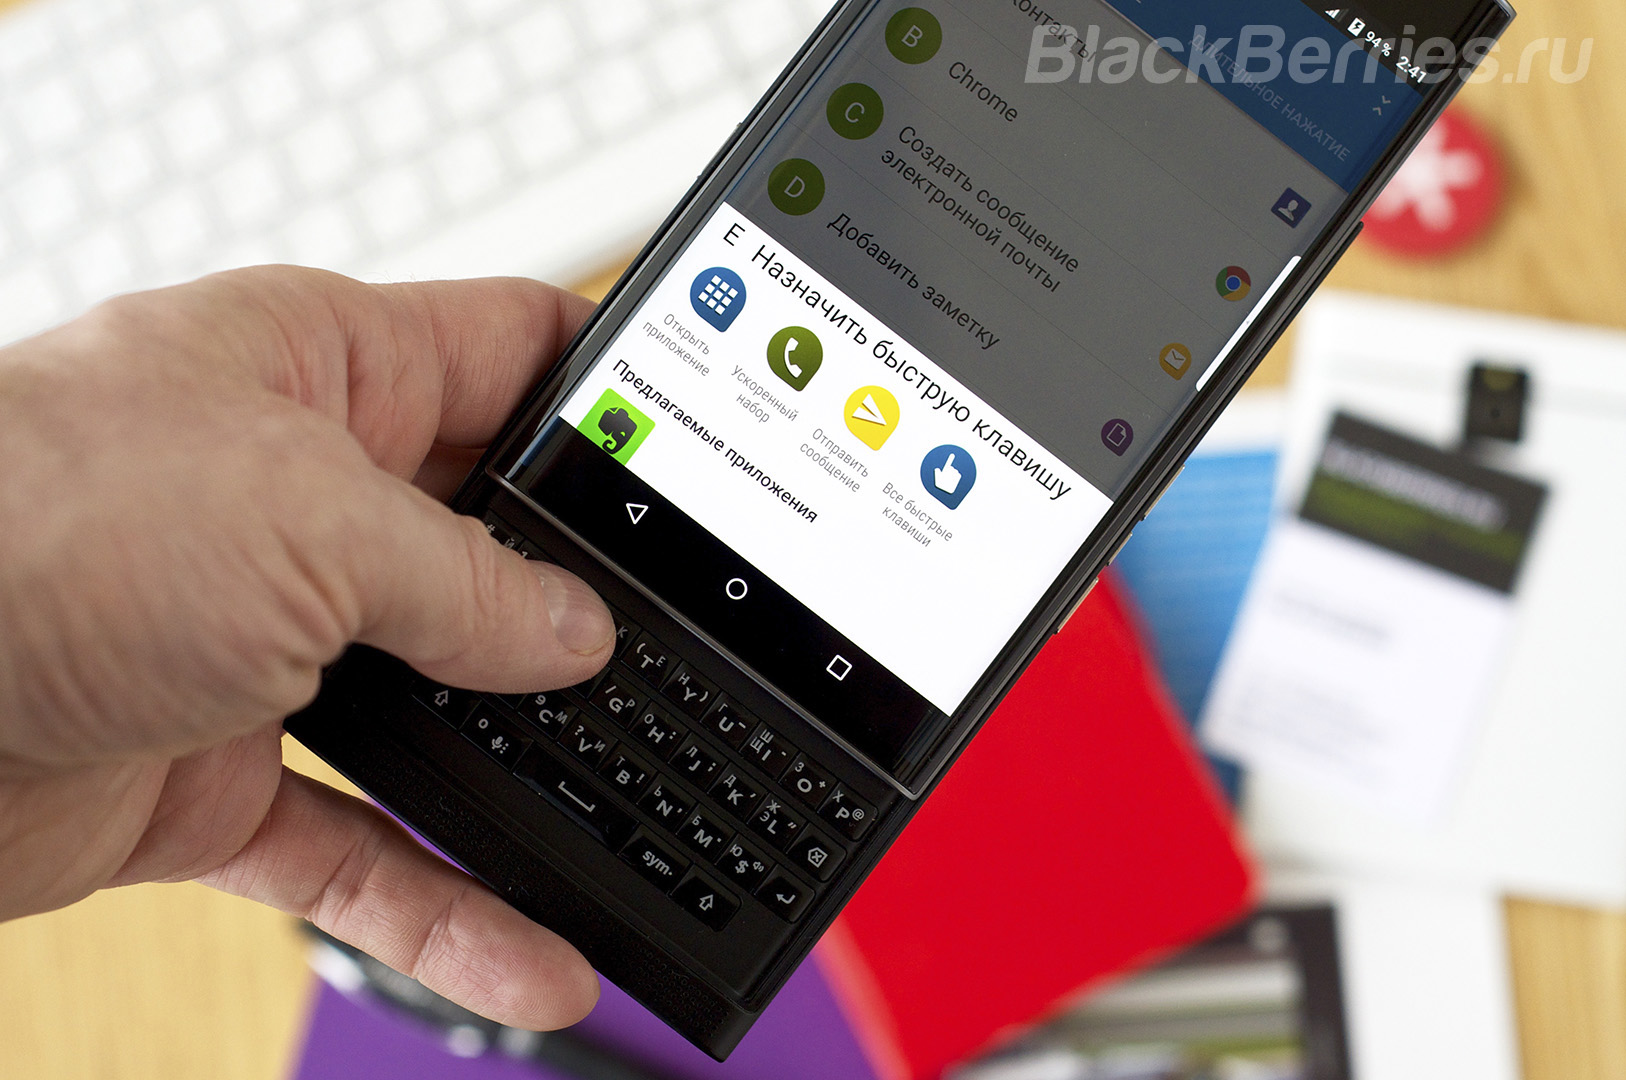 BlackBerry-Priv-Review-010